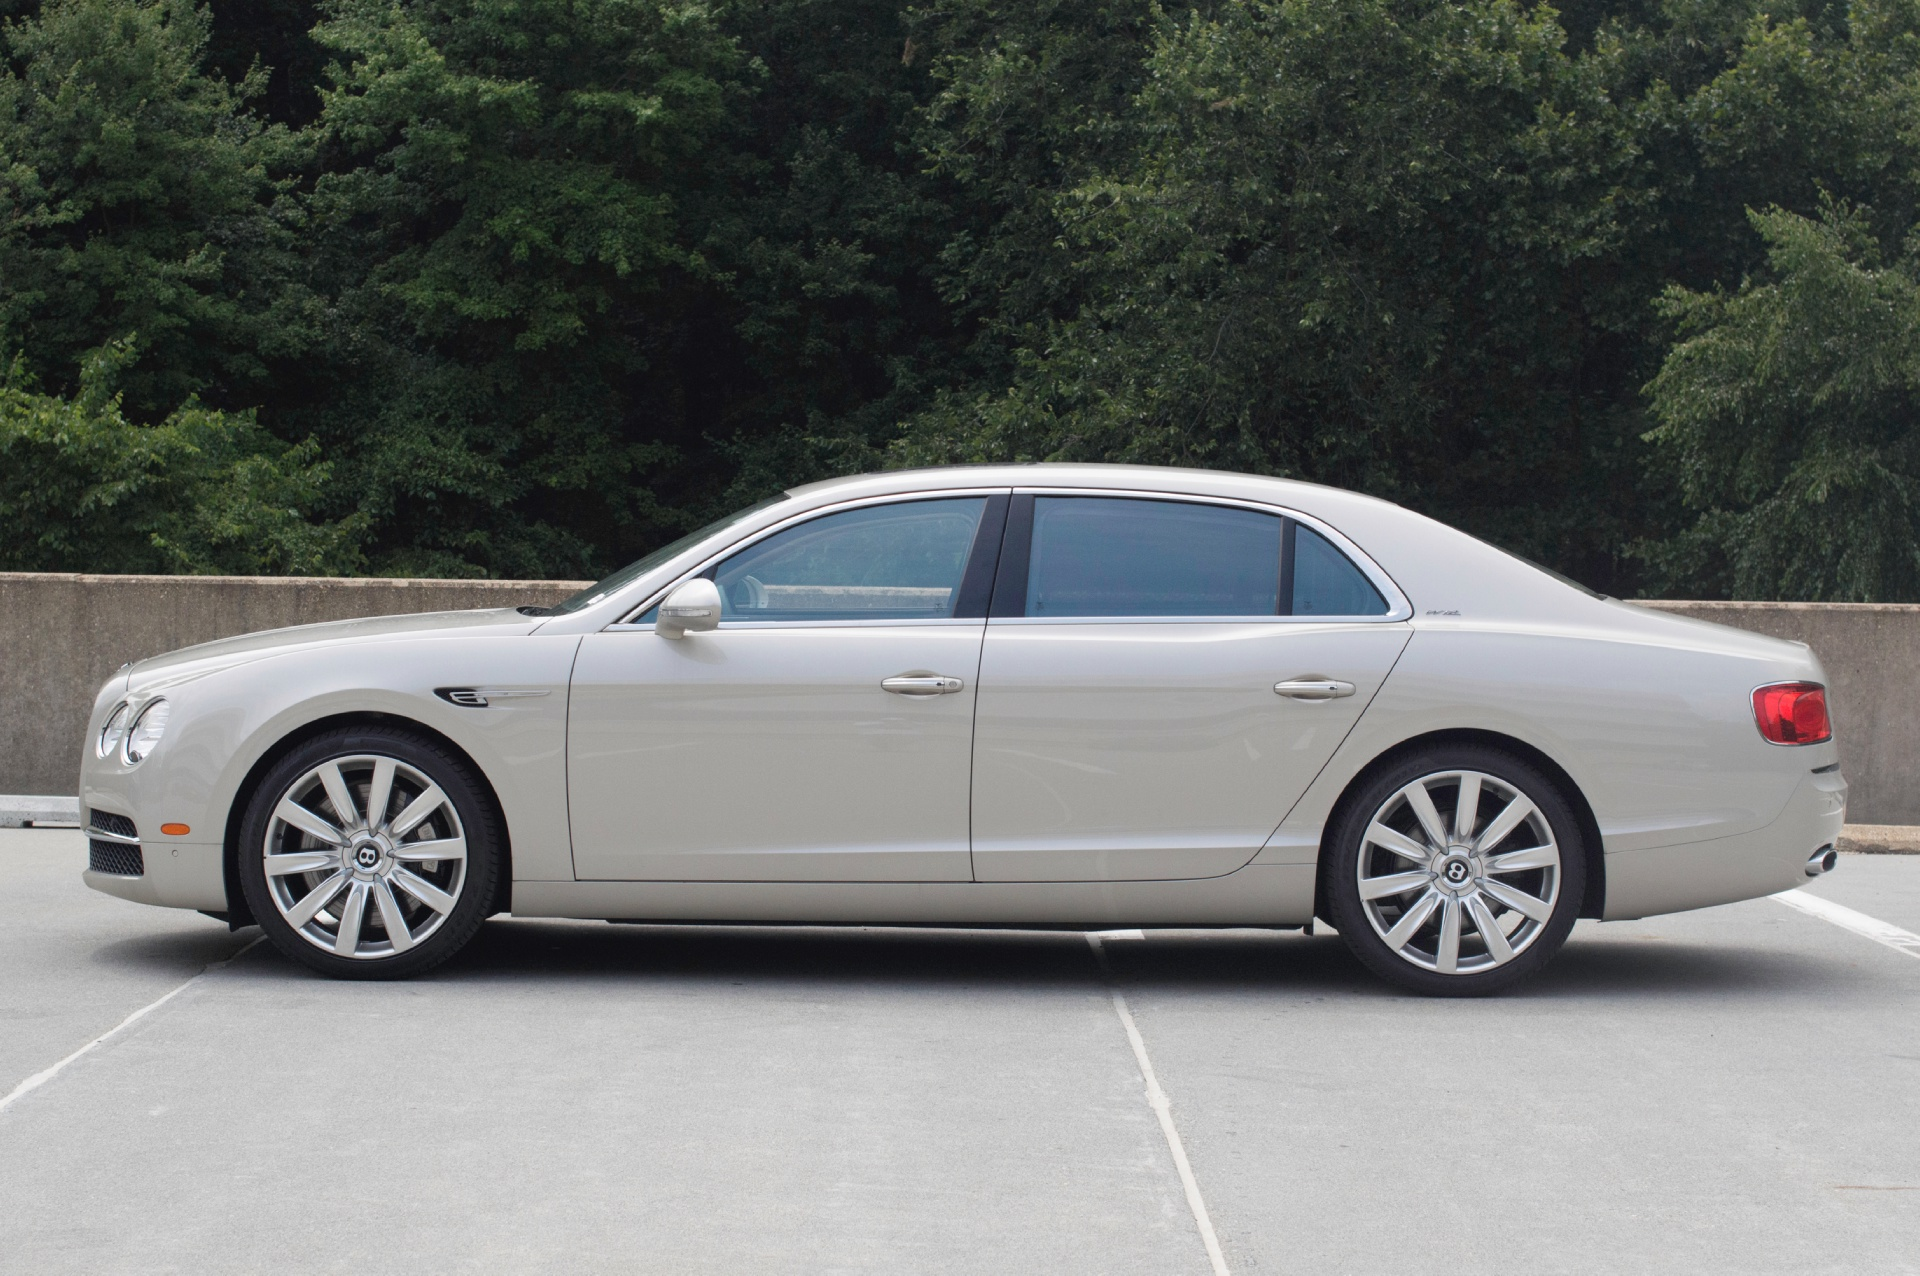 2014 Bentley Flying Spur Stock # 4N094033 for sale near Vienna, VA ...